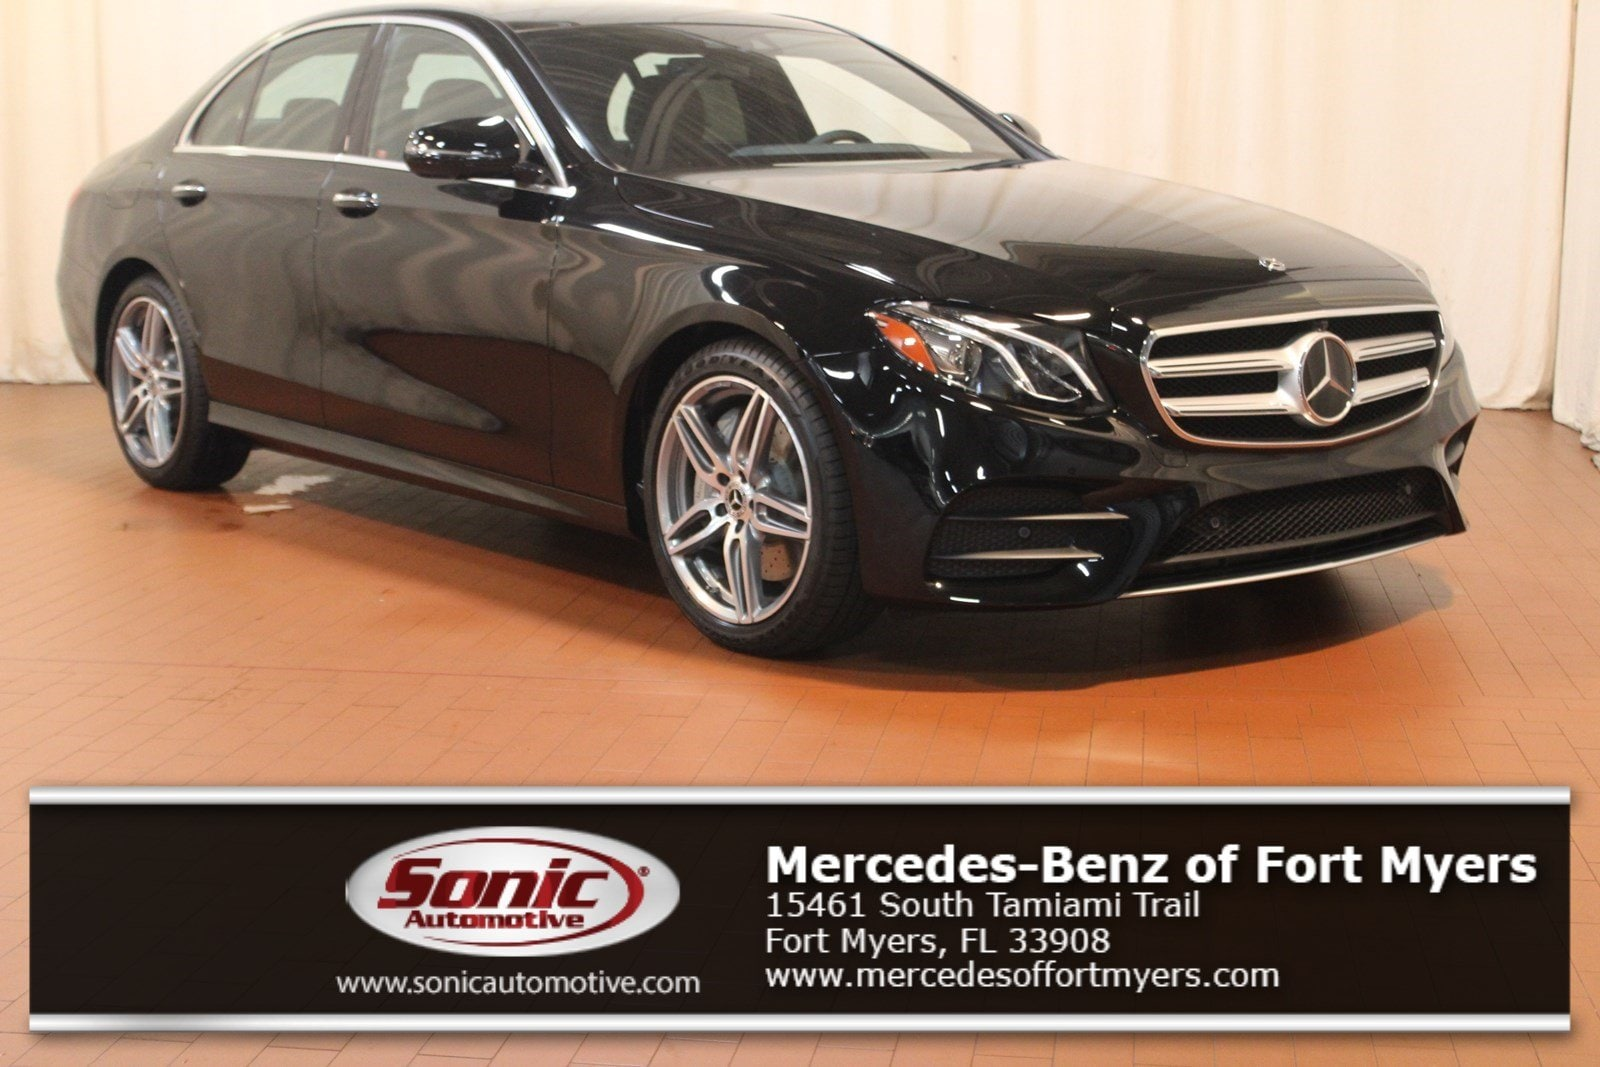 Mercedes-Benz E-Class: Switching on DISTRONIC PLUS, storing the current speed and maintaining it